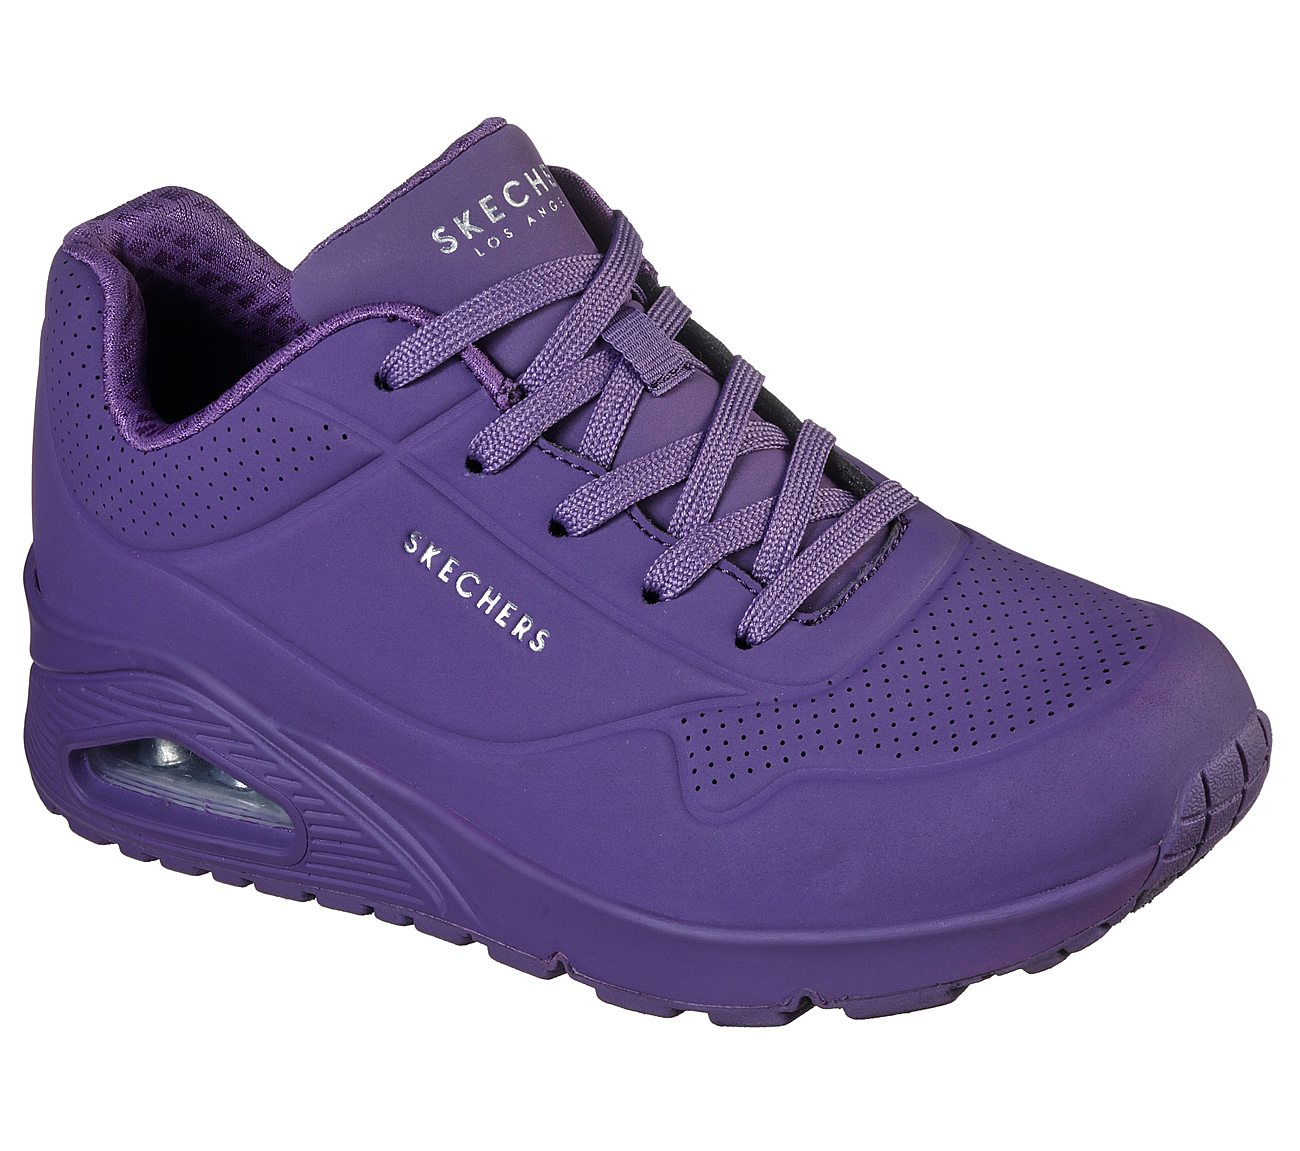 feb396ccf3a8 Buy SKECHERS Uno - Stand on Air SKECHER Street Shoes only  65.00